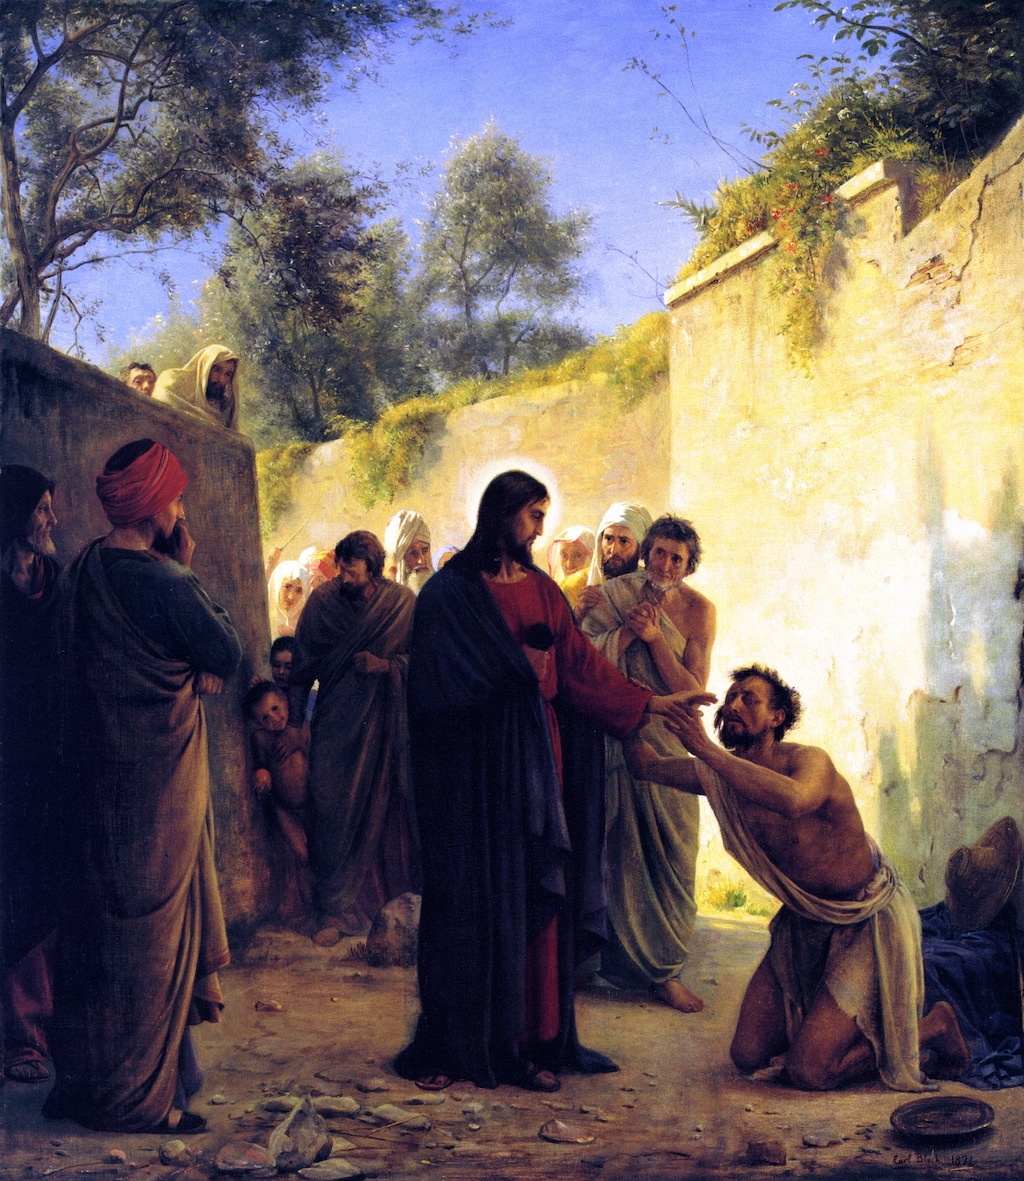 File:Healing of the Blind Man by Jesus Christ.jpg - Wikimedia Commons